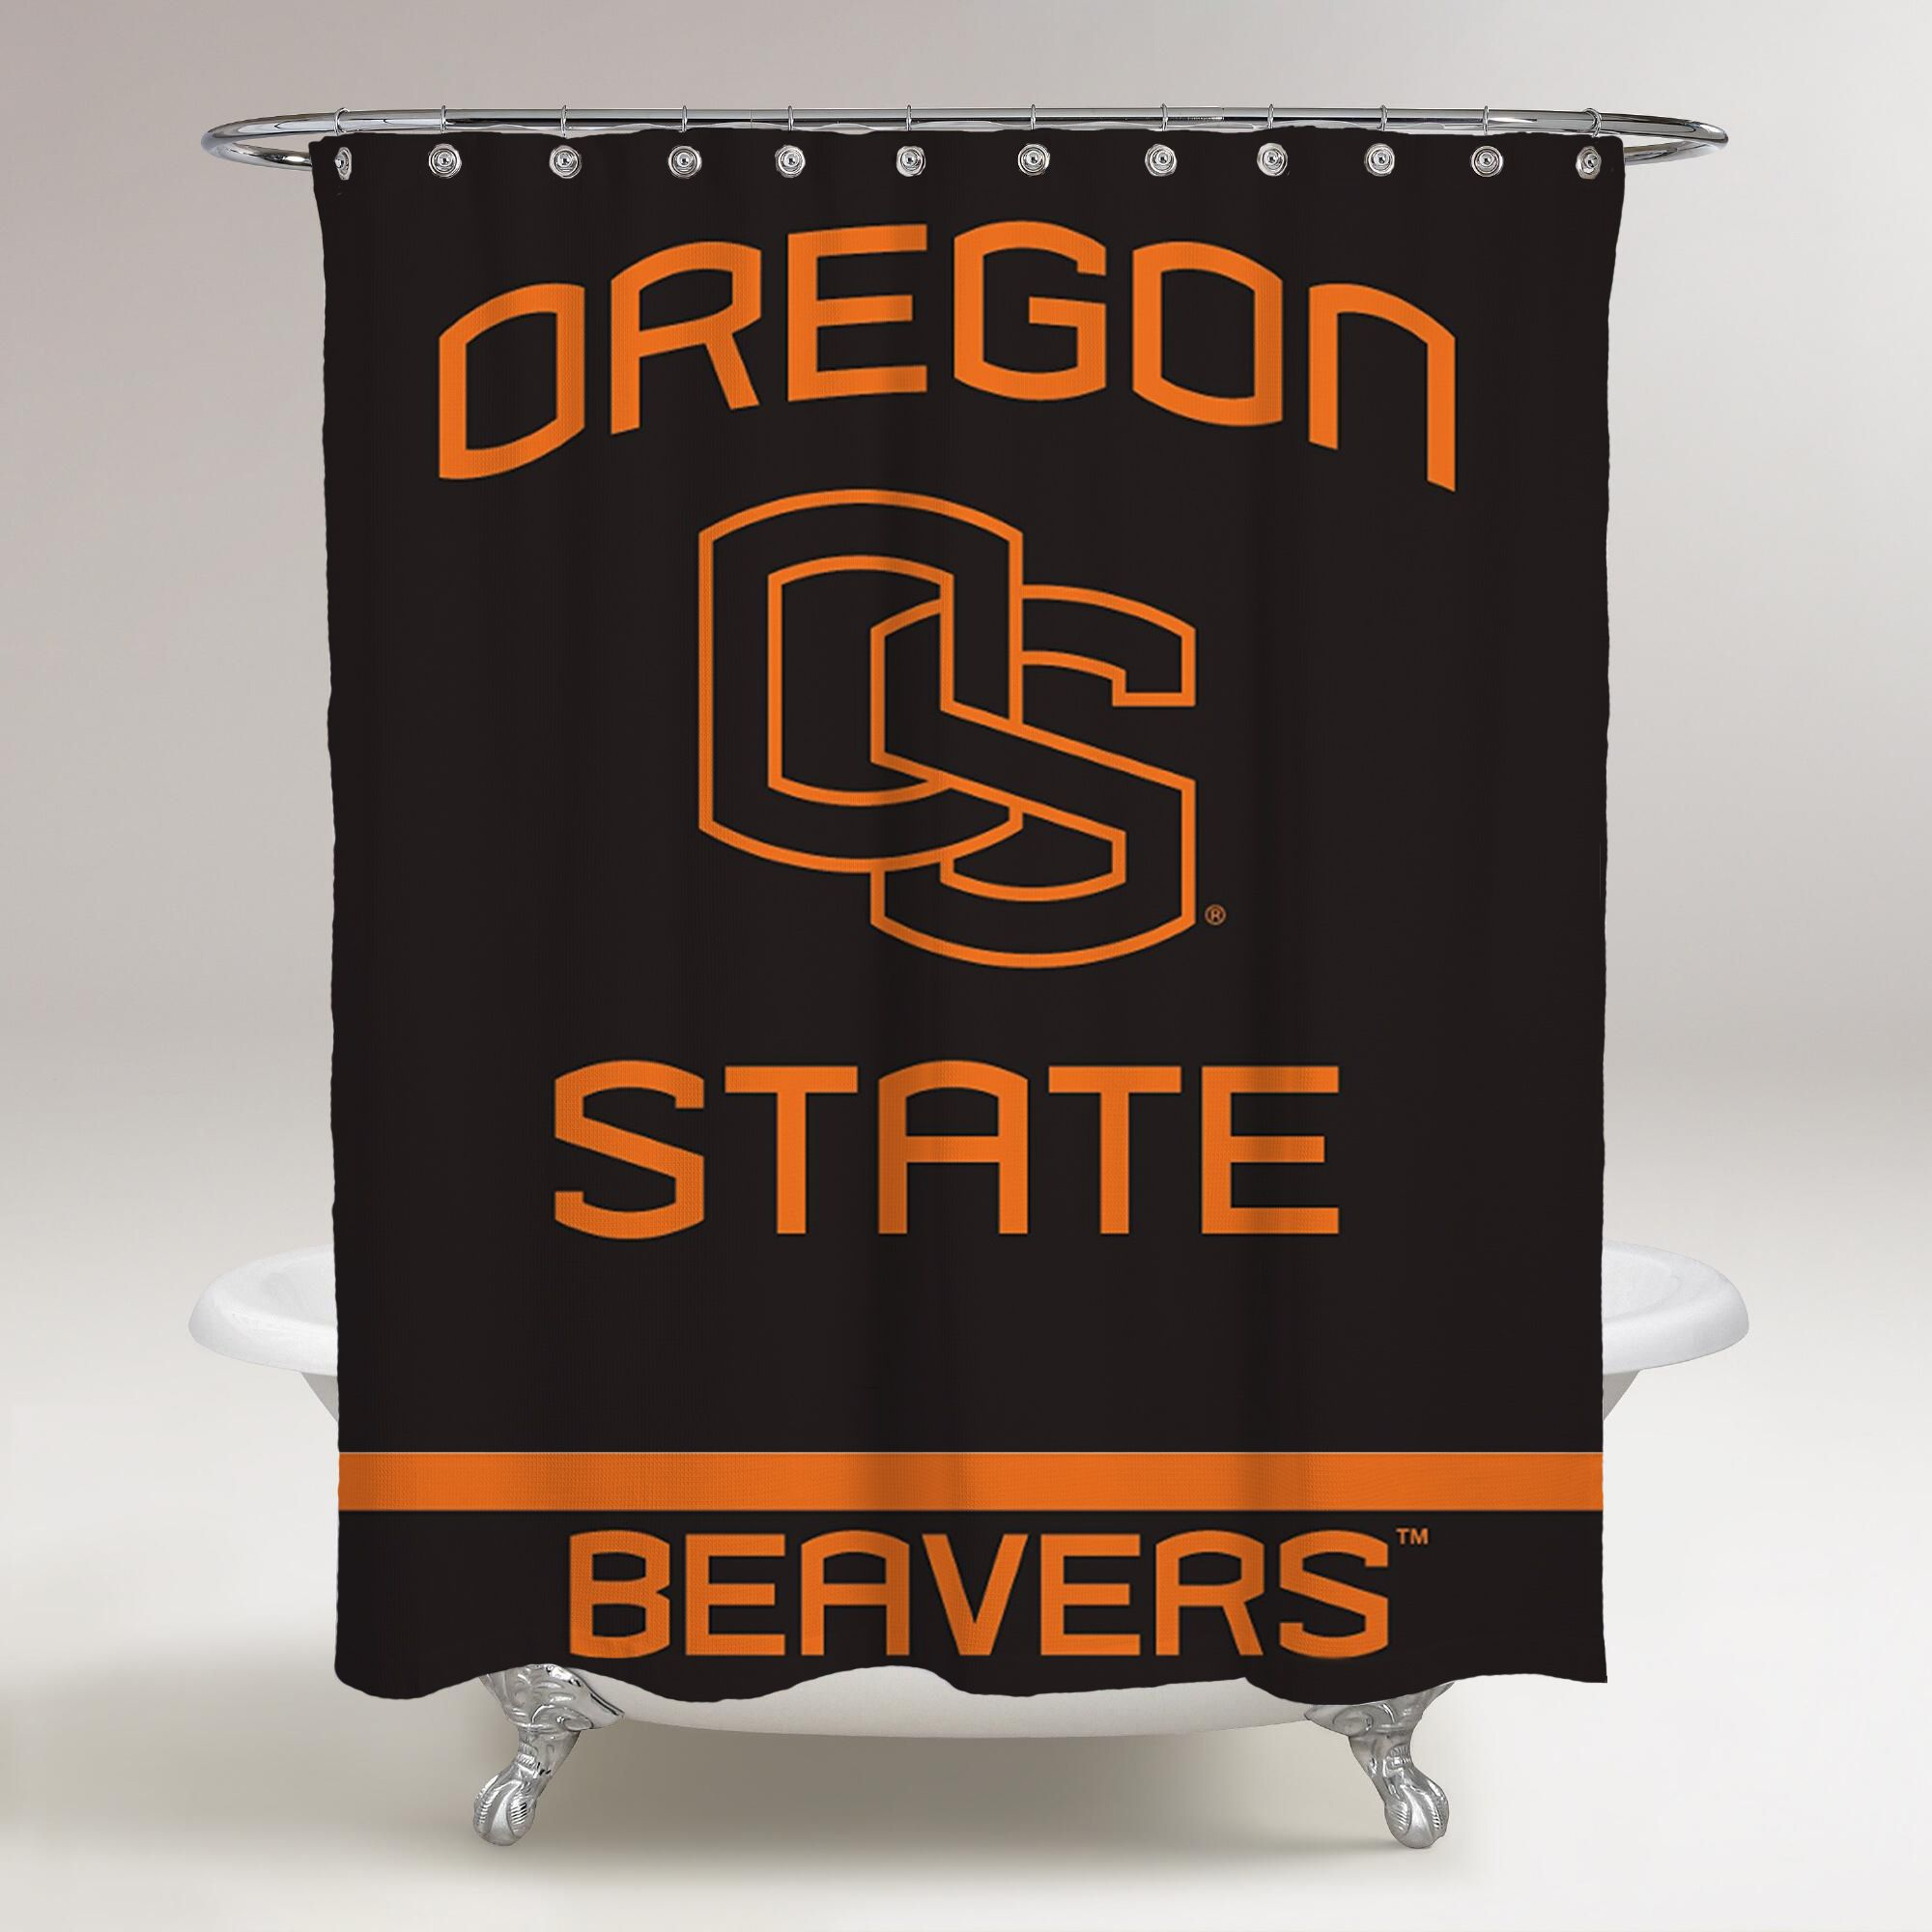 Oregon State Beavers Logo Wallpaper Black Background Printed Shower Curtain Bathroom De Bathroom Wallpaper Personalized Shower Curtain Bathroom Shower Curtains